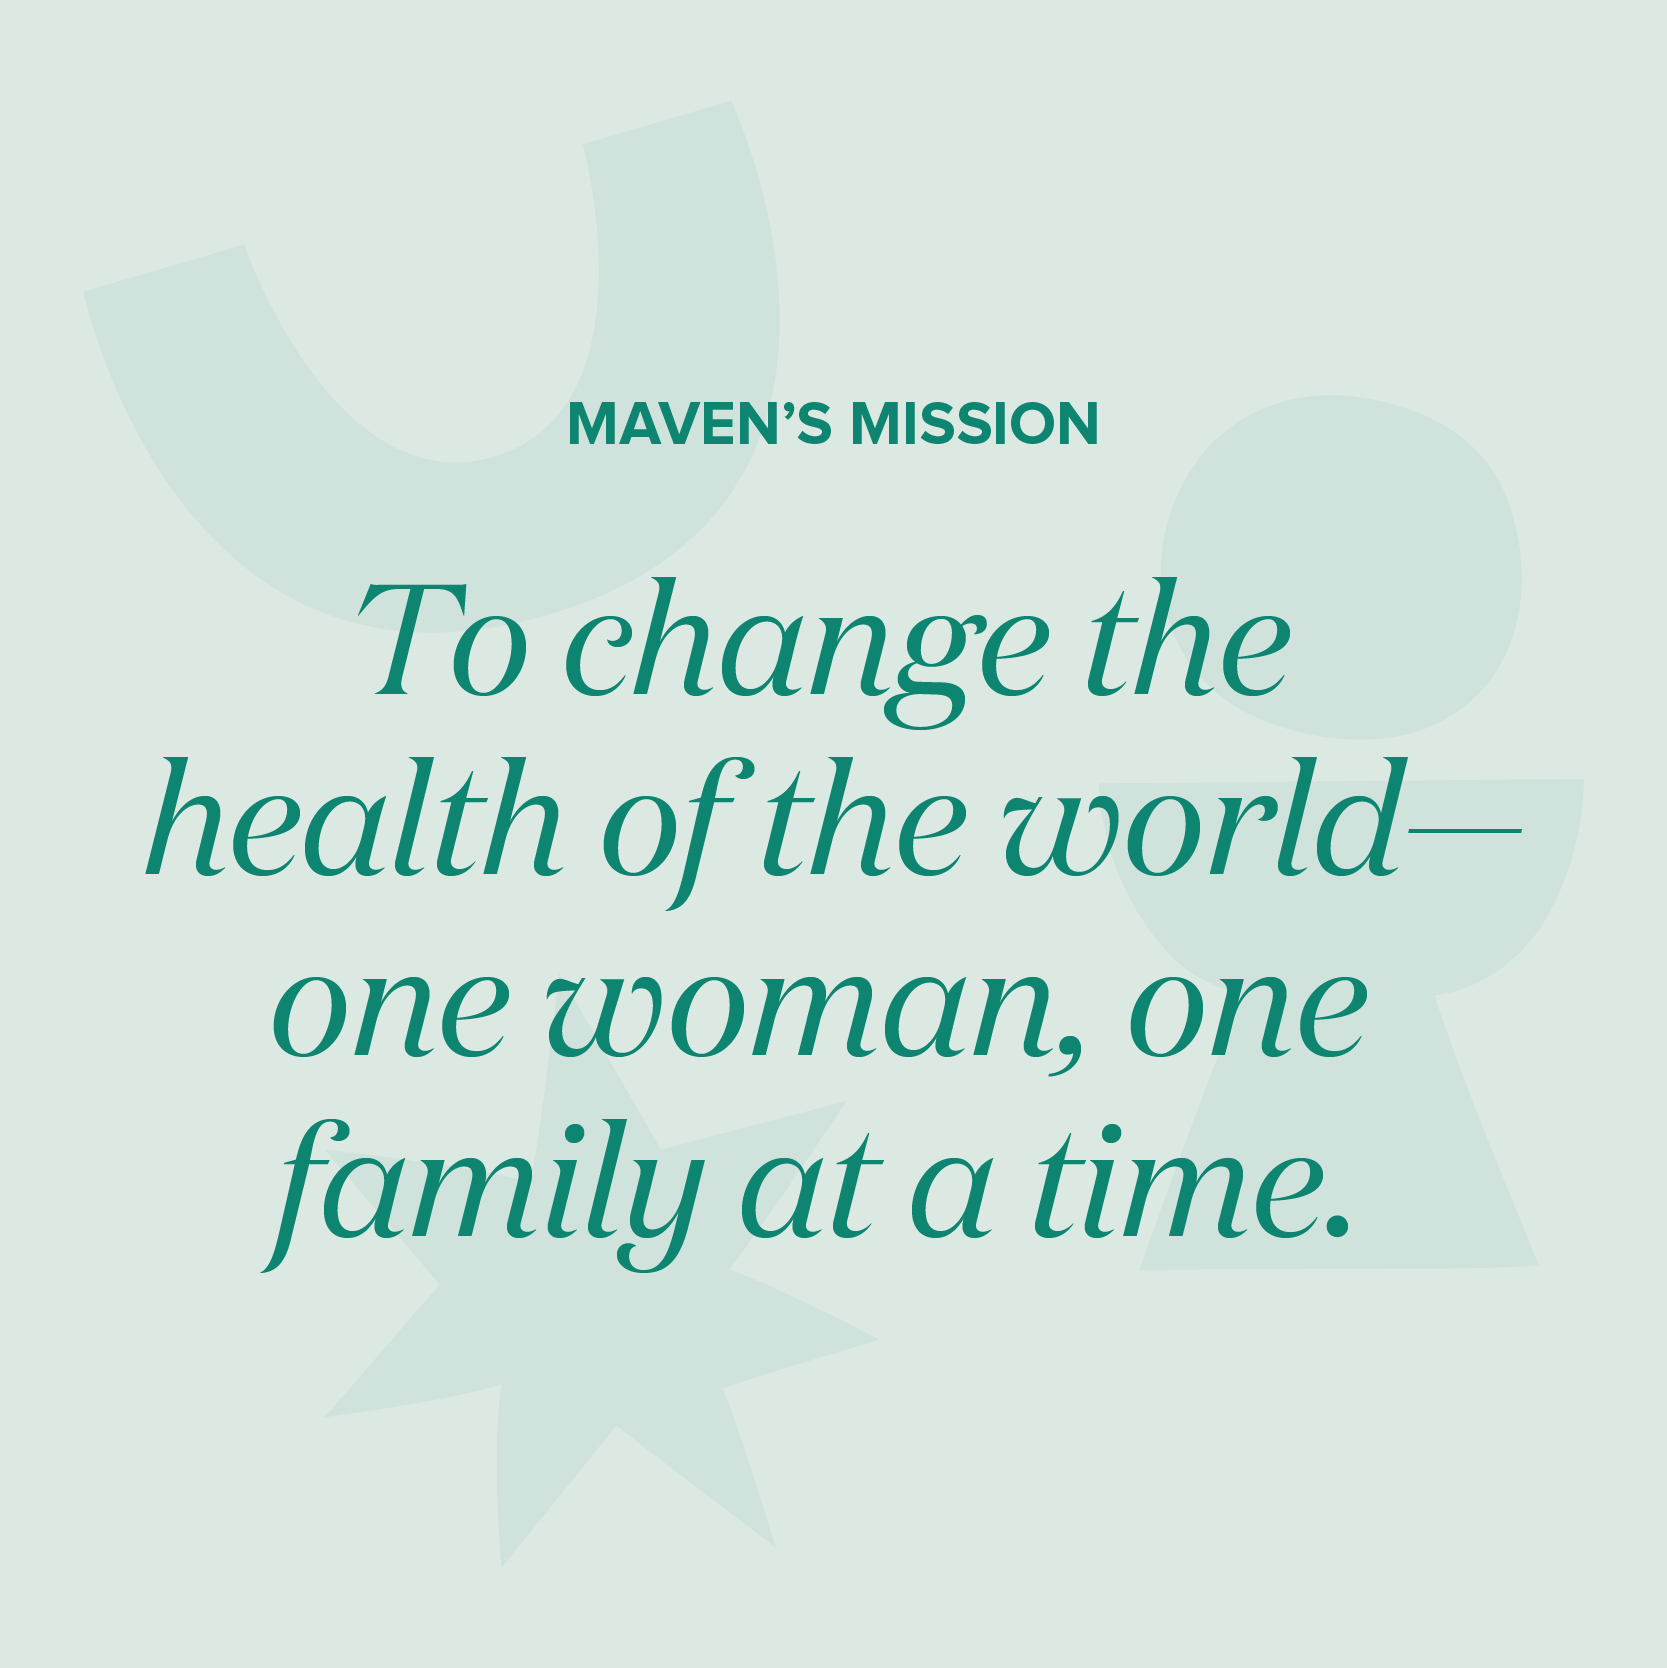 Changing the health of the world—one woman, one family at a time